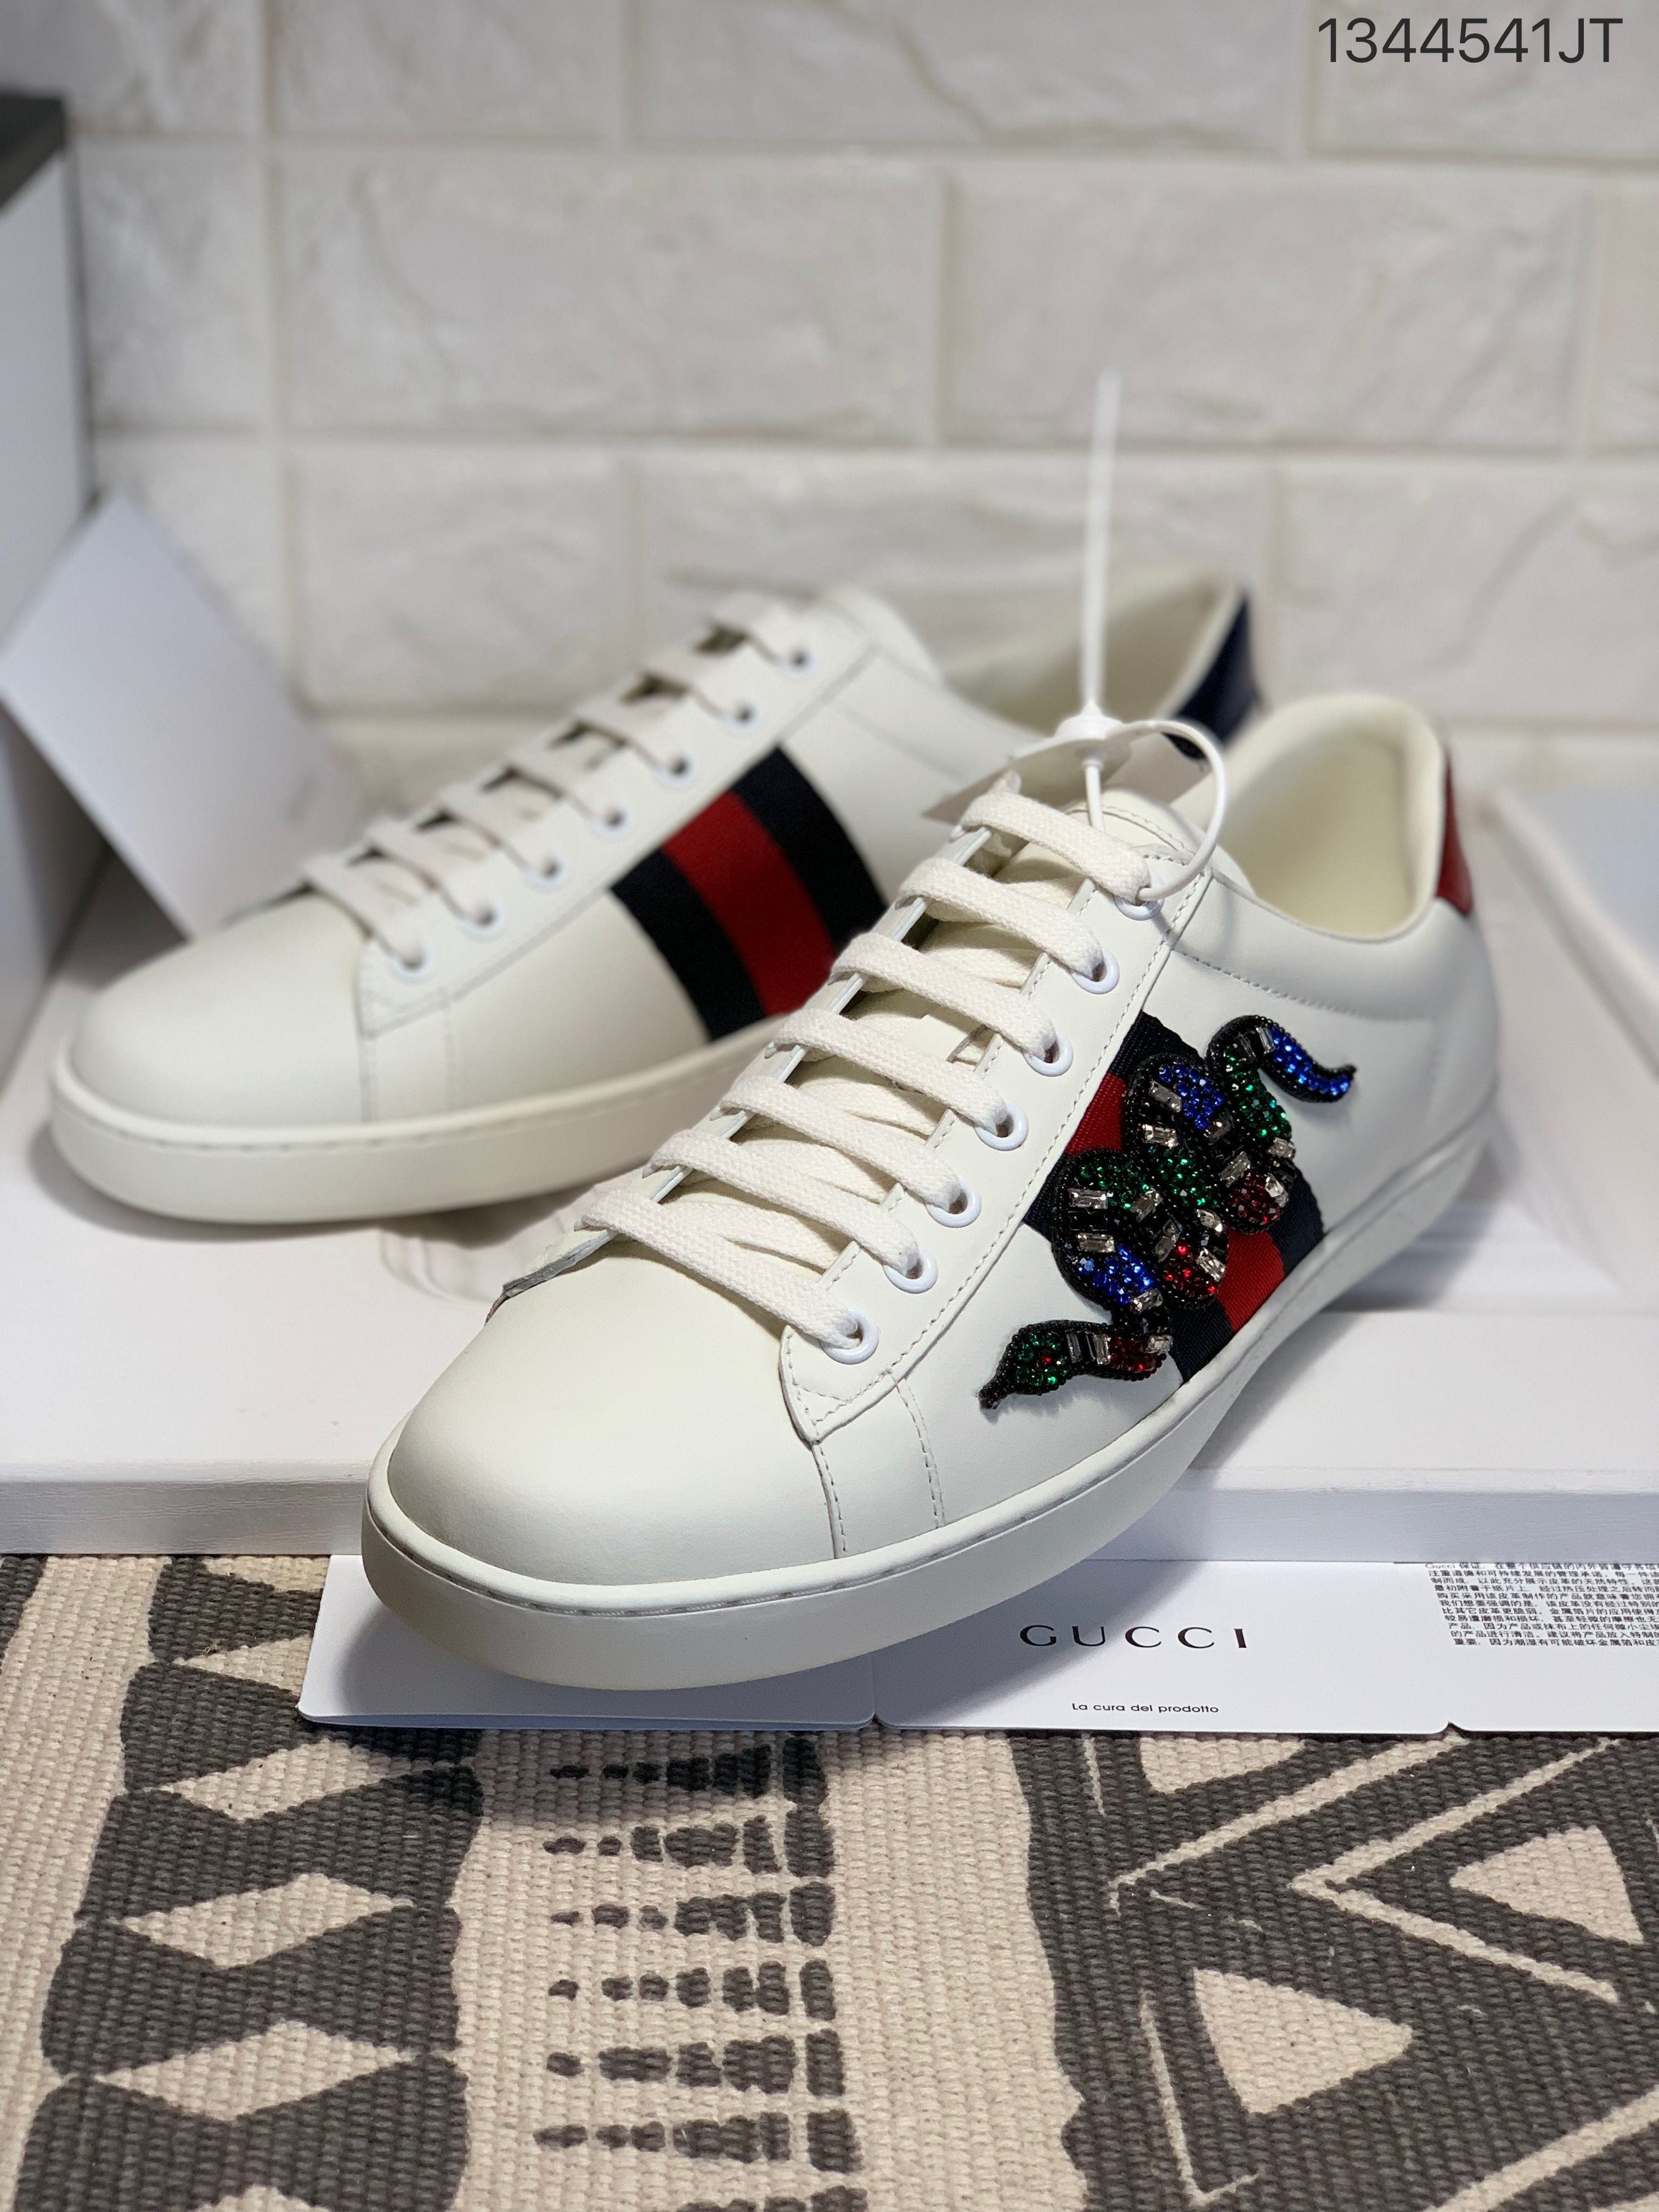 Gucci woman man couple ace sneakers